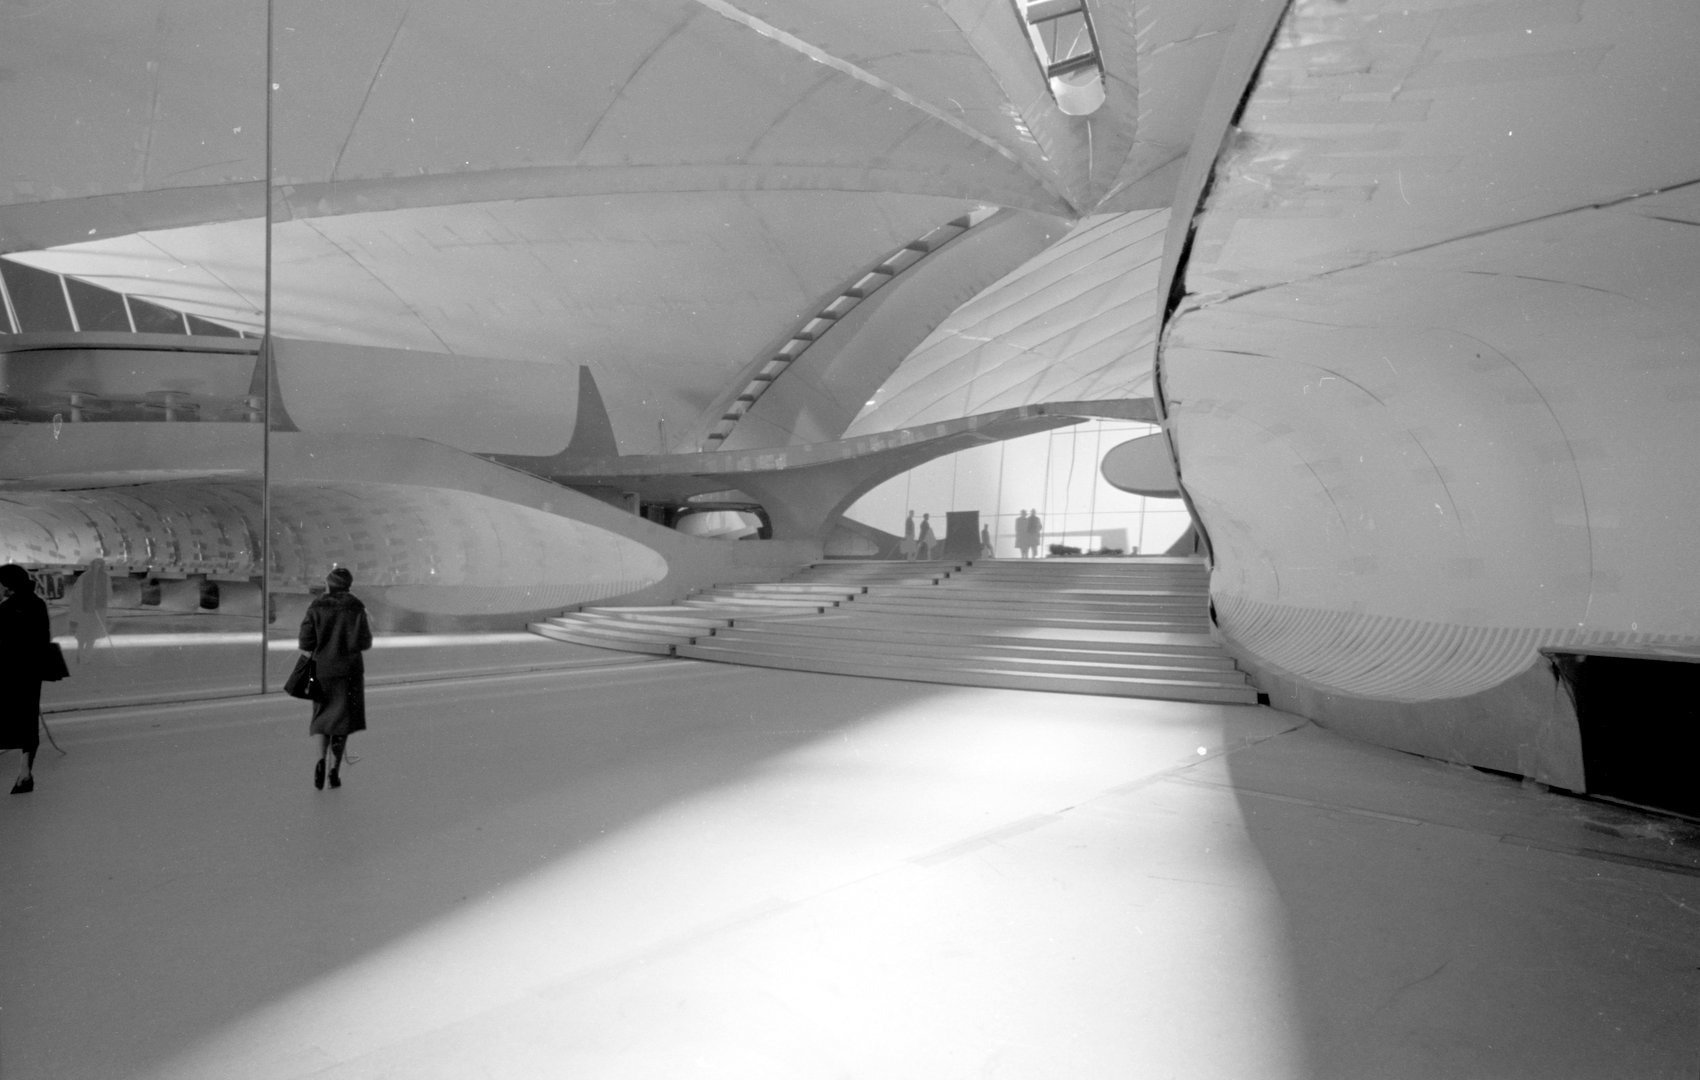 Sweeping view of inside the TWA Terminal at JFK airport 1960s